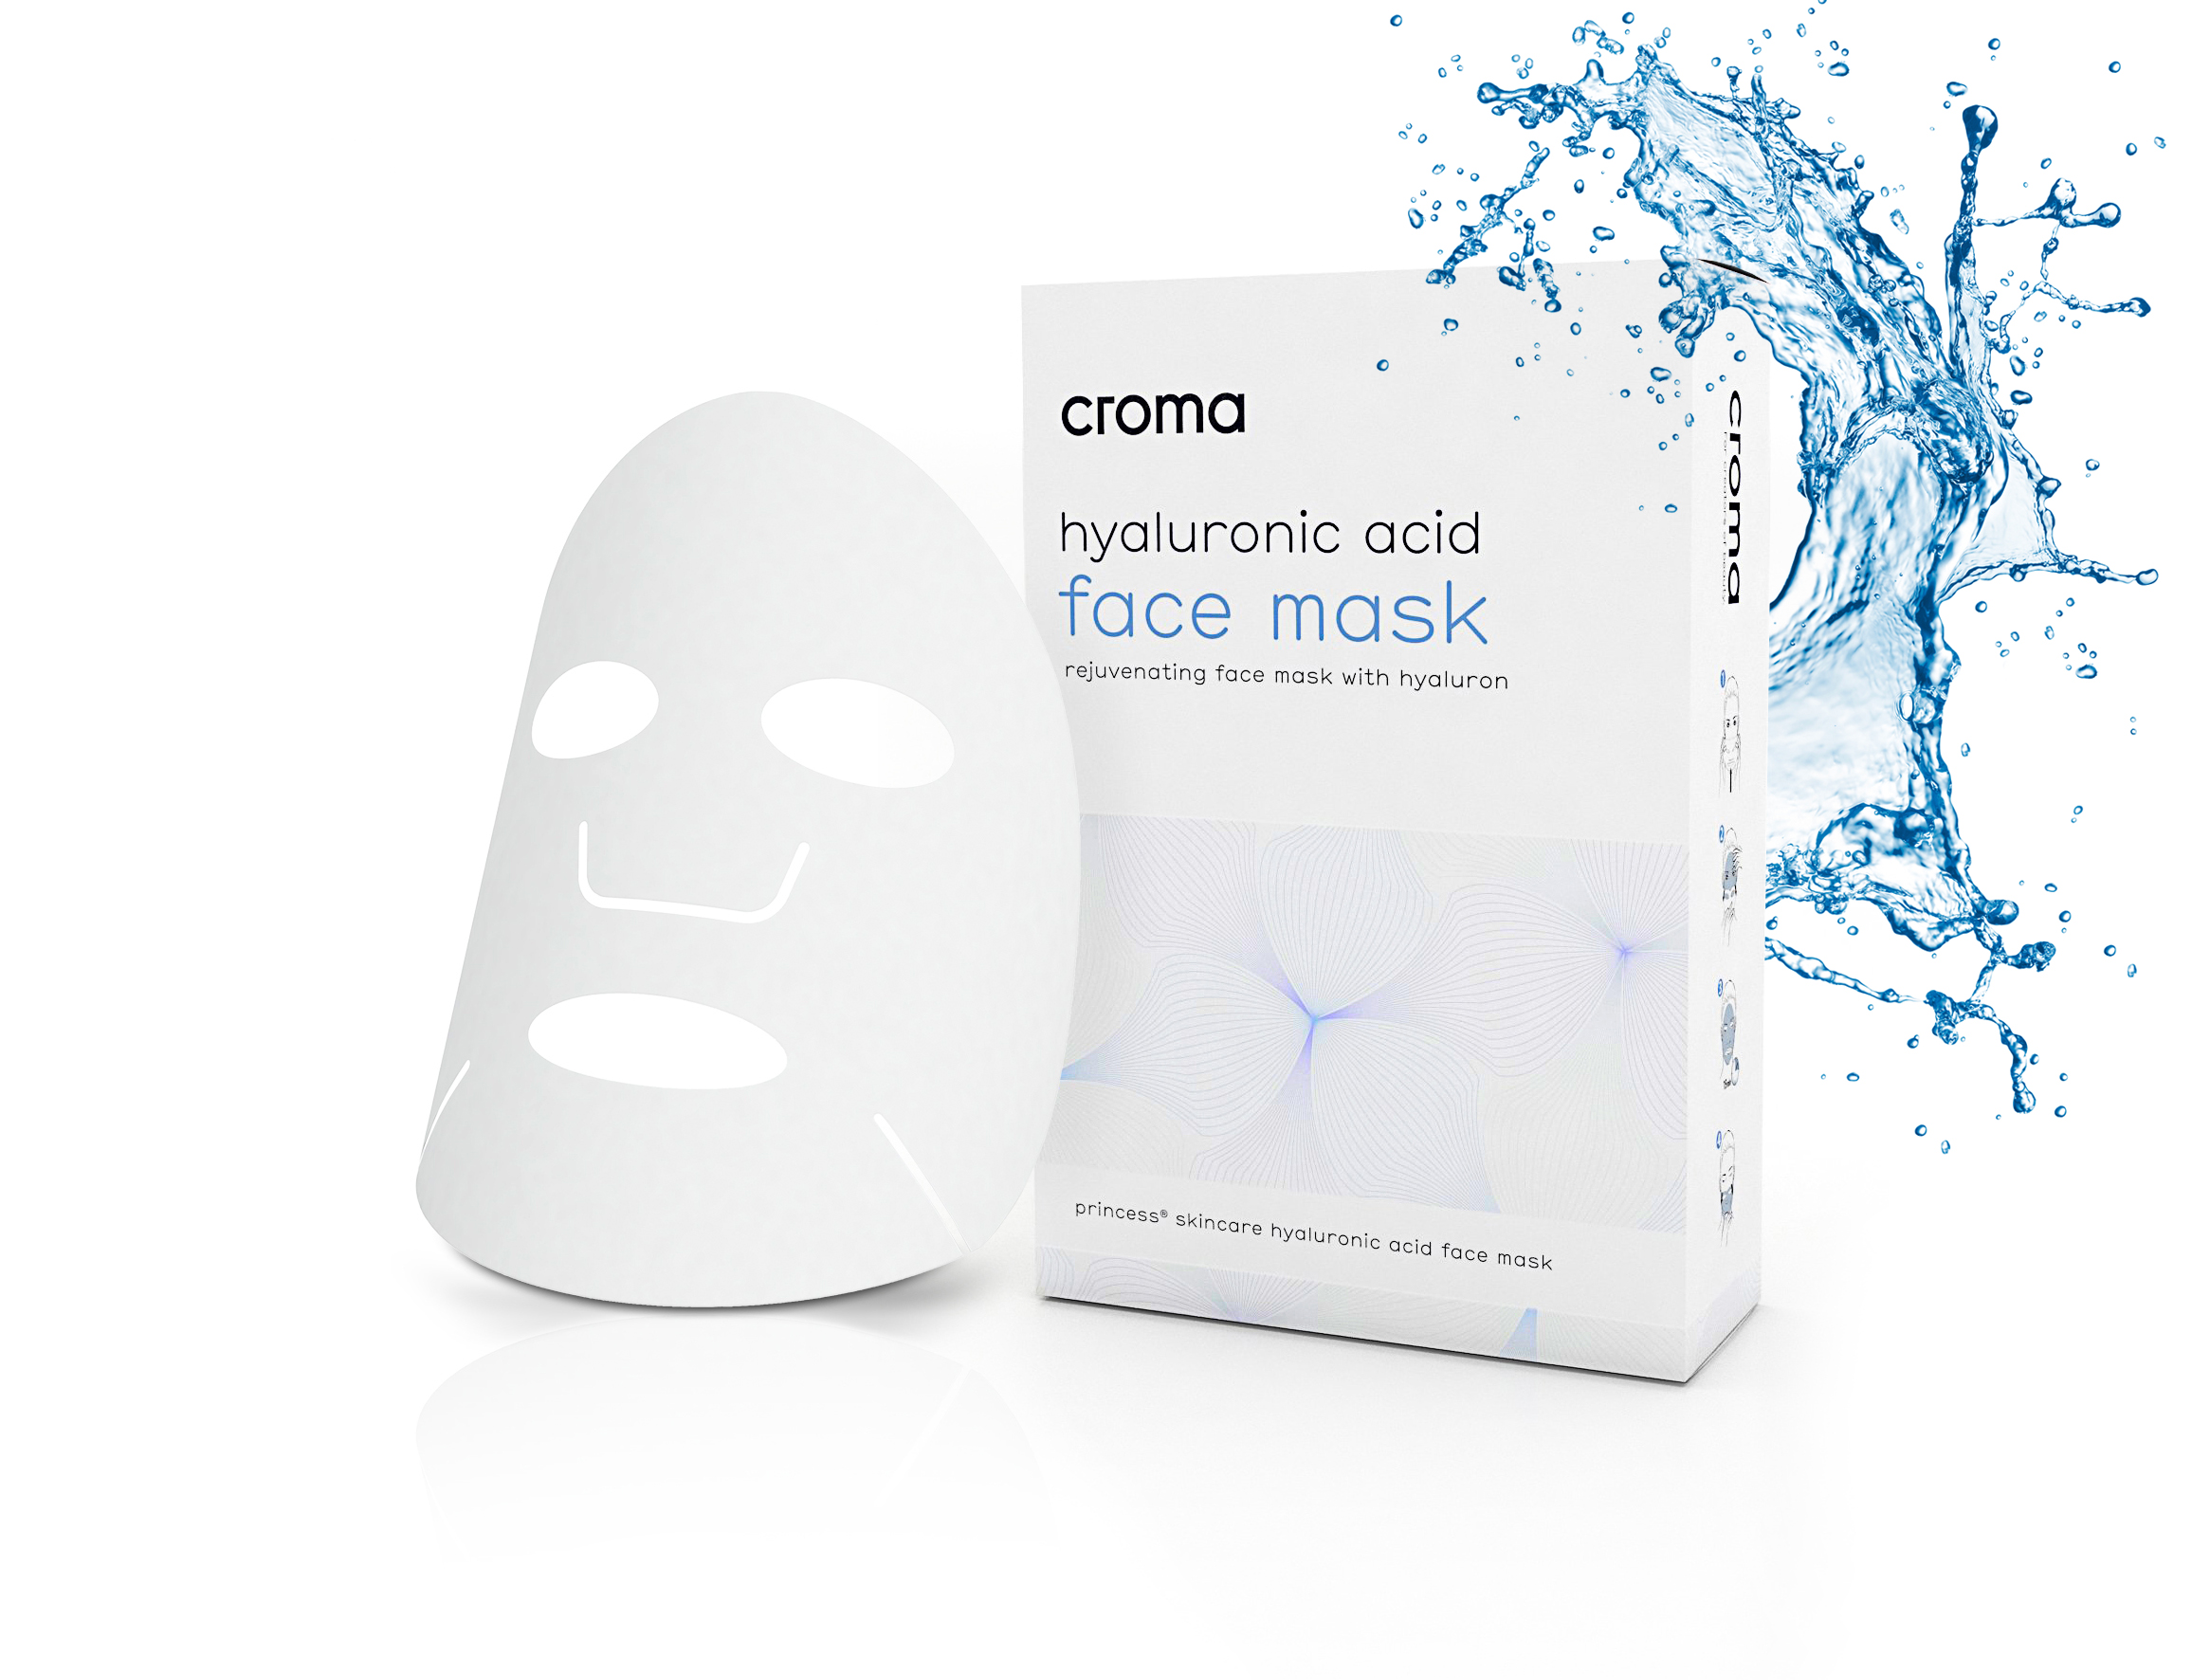 HA Face Mask 1806 v01 jmo